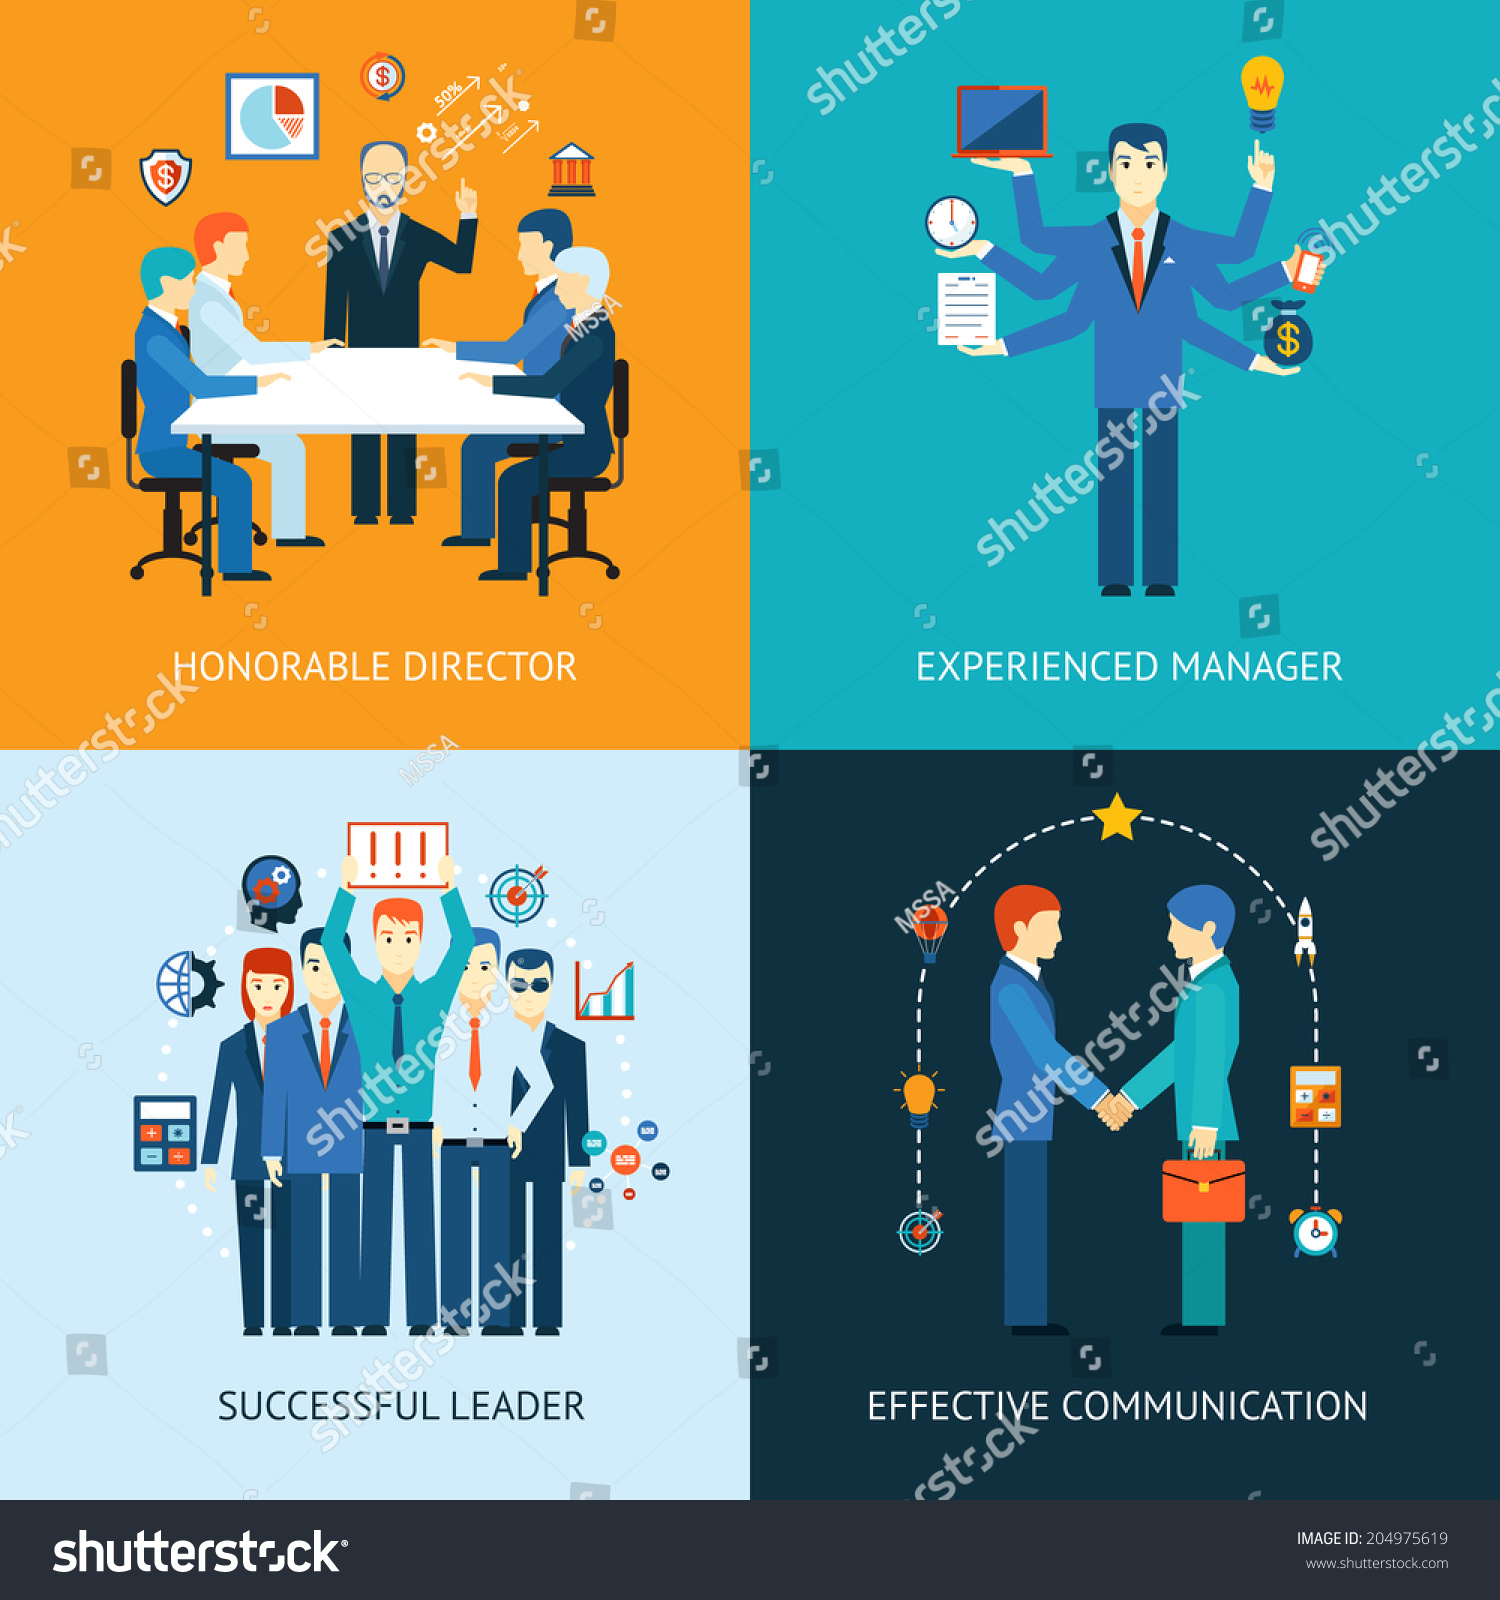 business team leader banners management meeting stock vector business team leader banners a management meeting honorable director a multitasking man experienced